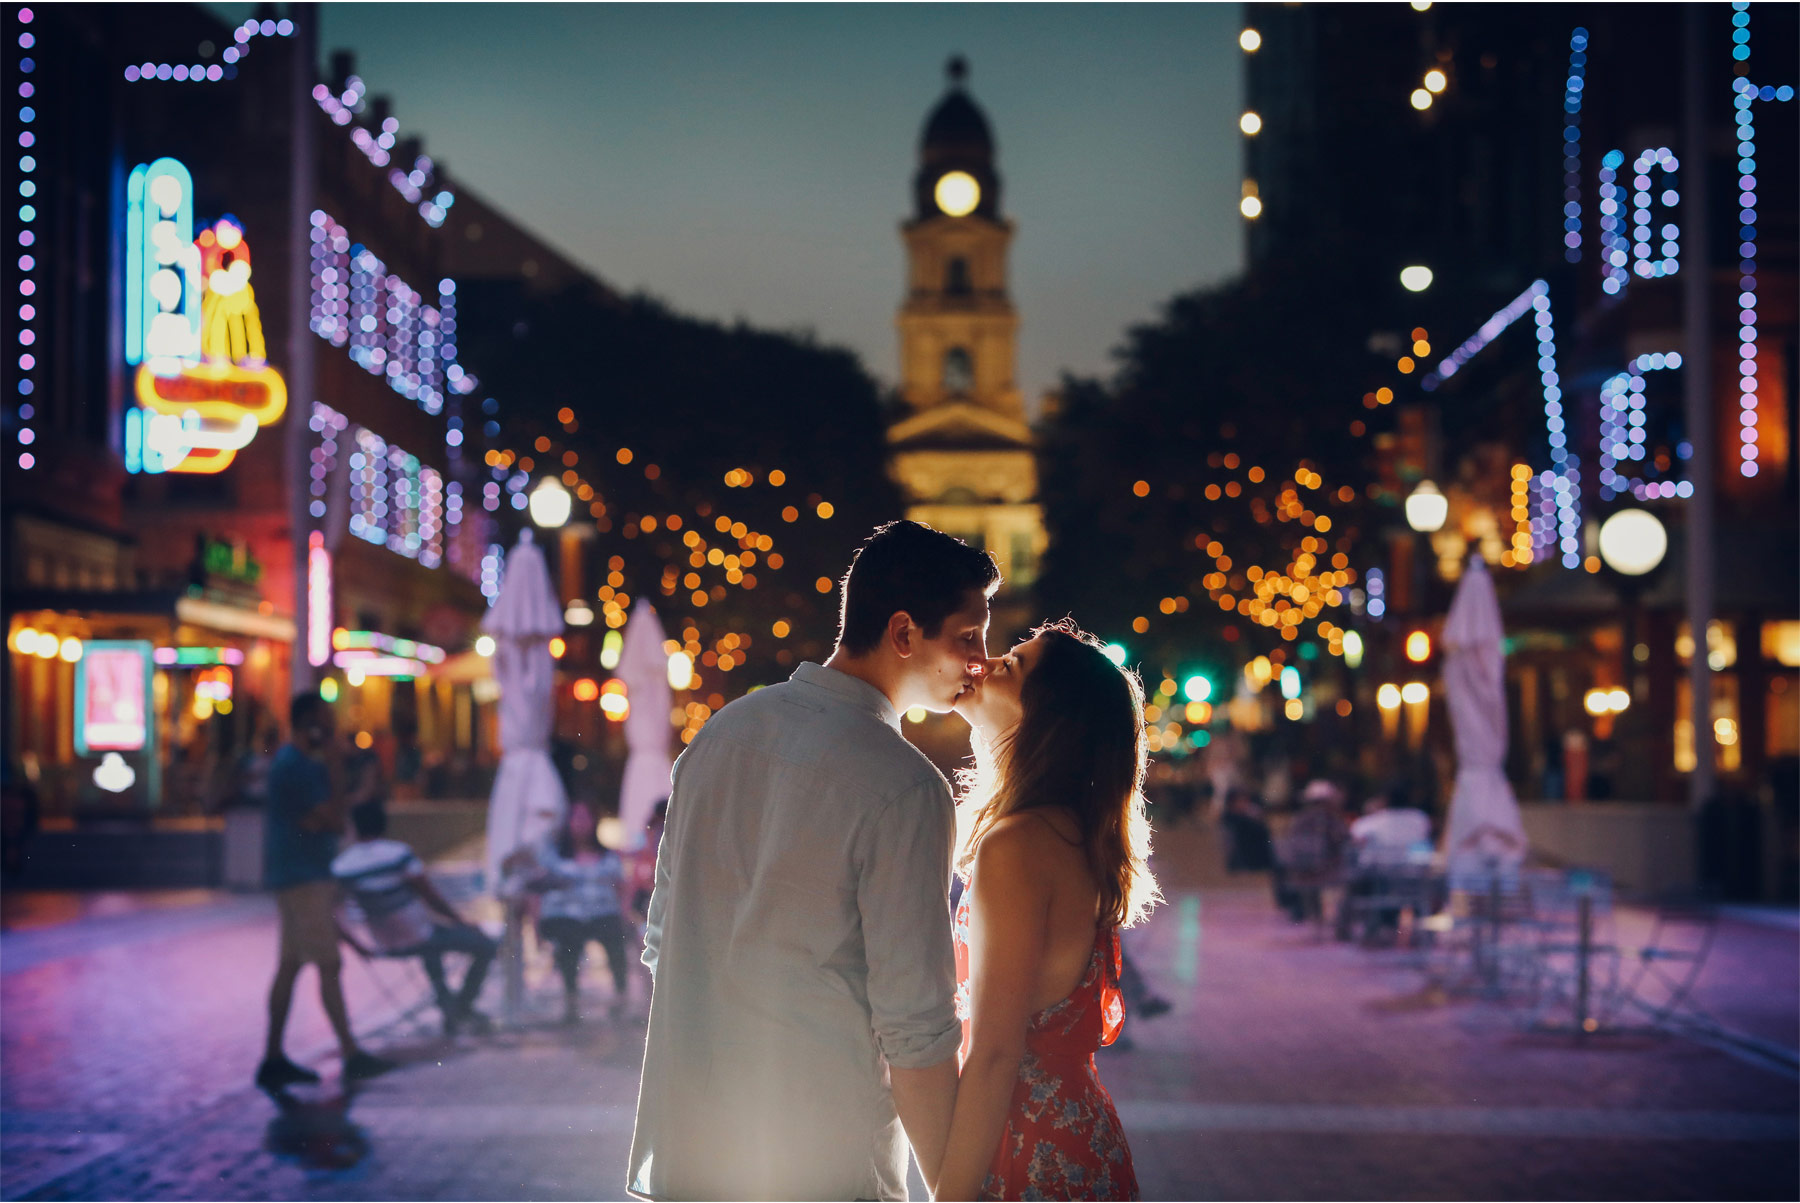 15-Fly-to-Me-Destination-Engagement-Session-Vick-Photography-Fort-Worth-Texas-Couple-Night-Skyline-City-Lights-Downtown-Maggie-and-Matt.jpg